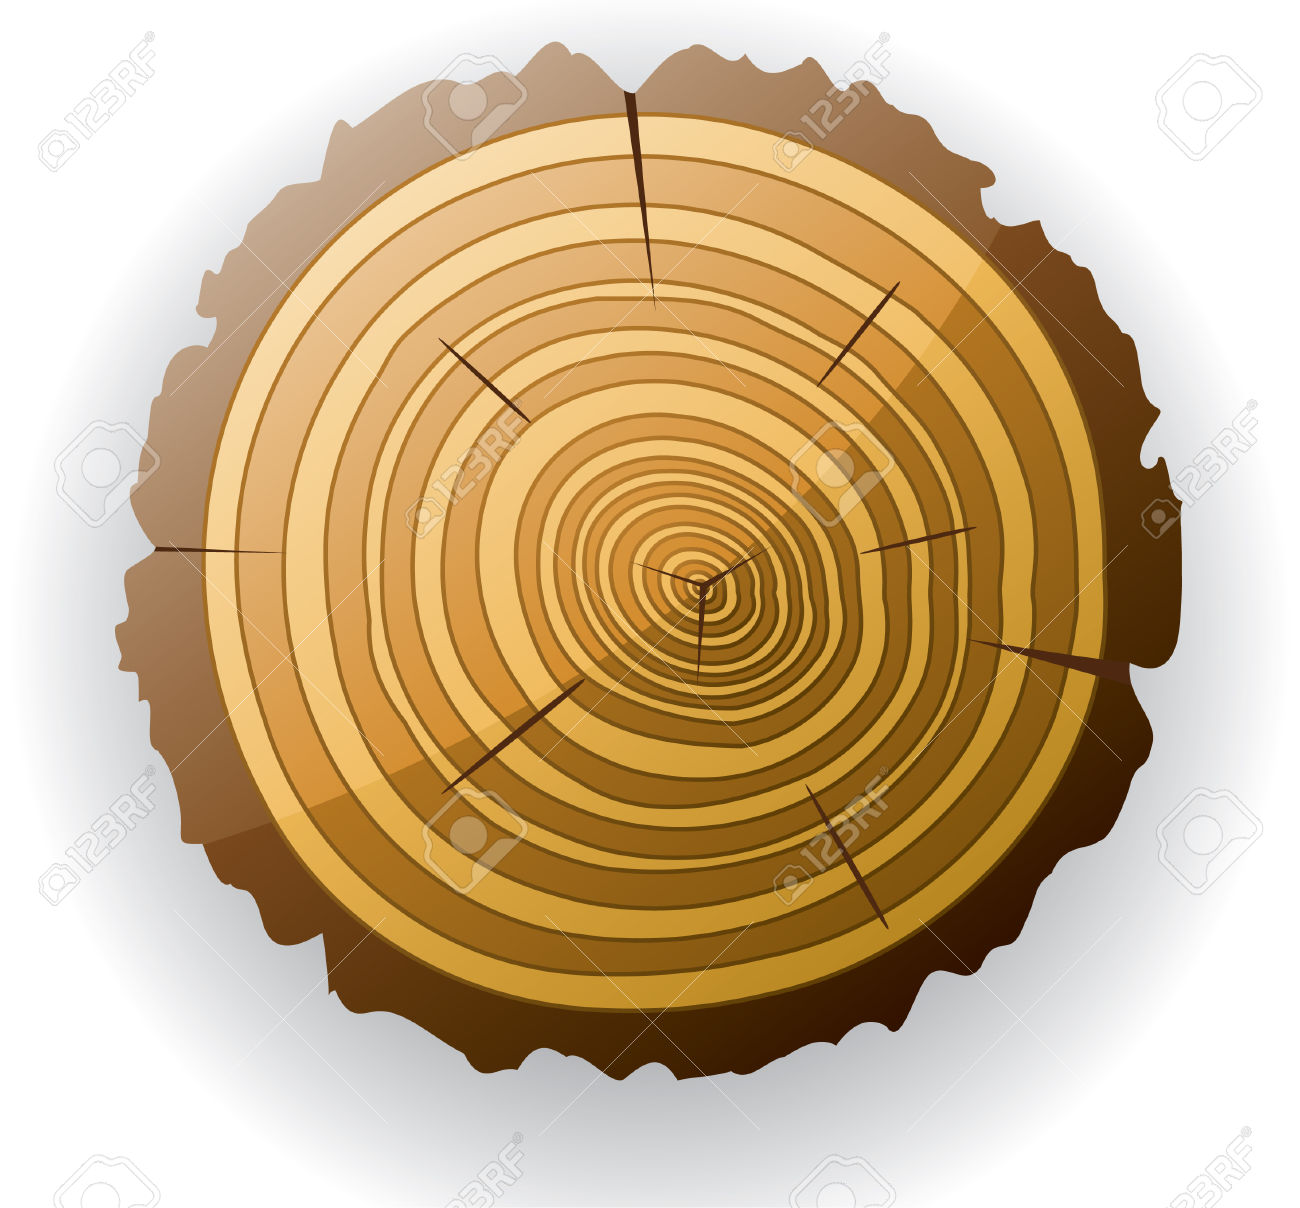 Wood art clipart clipground